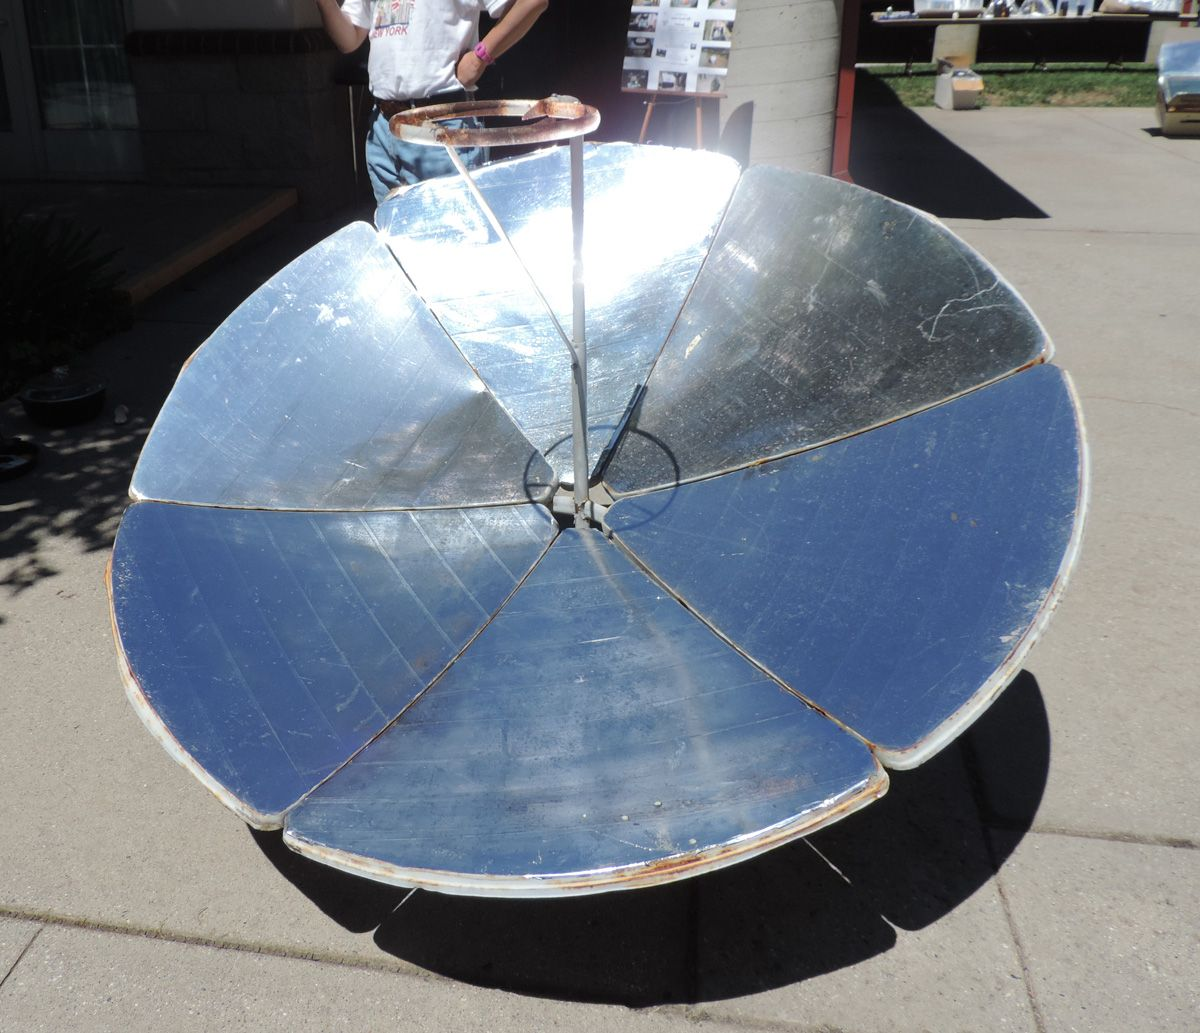 solar parabolic dish parabolic solar cooker made from an old